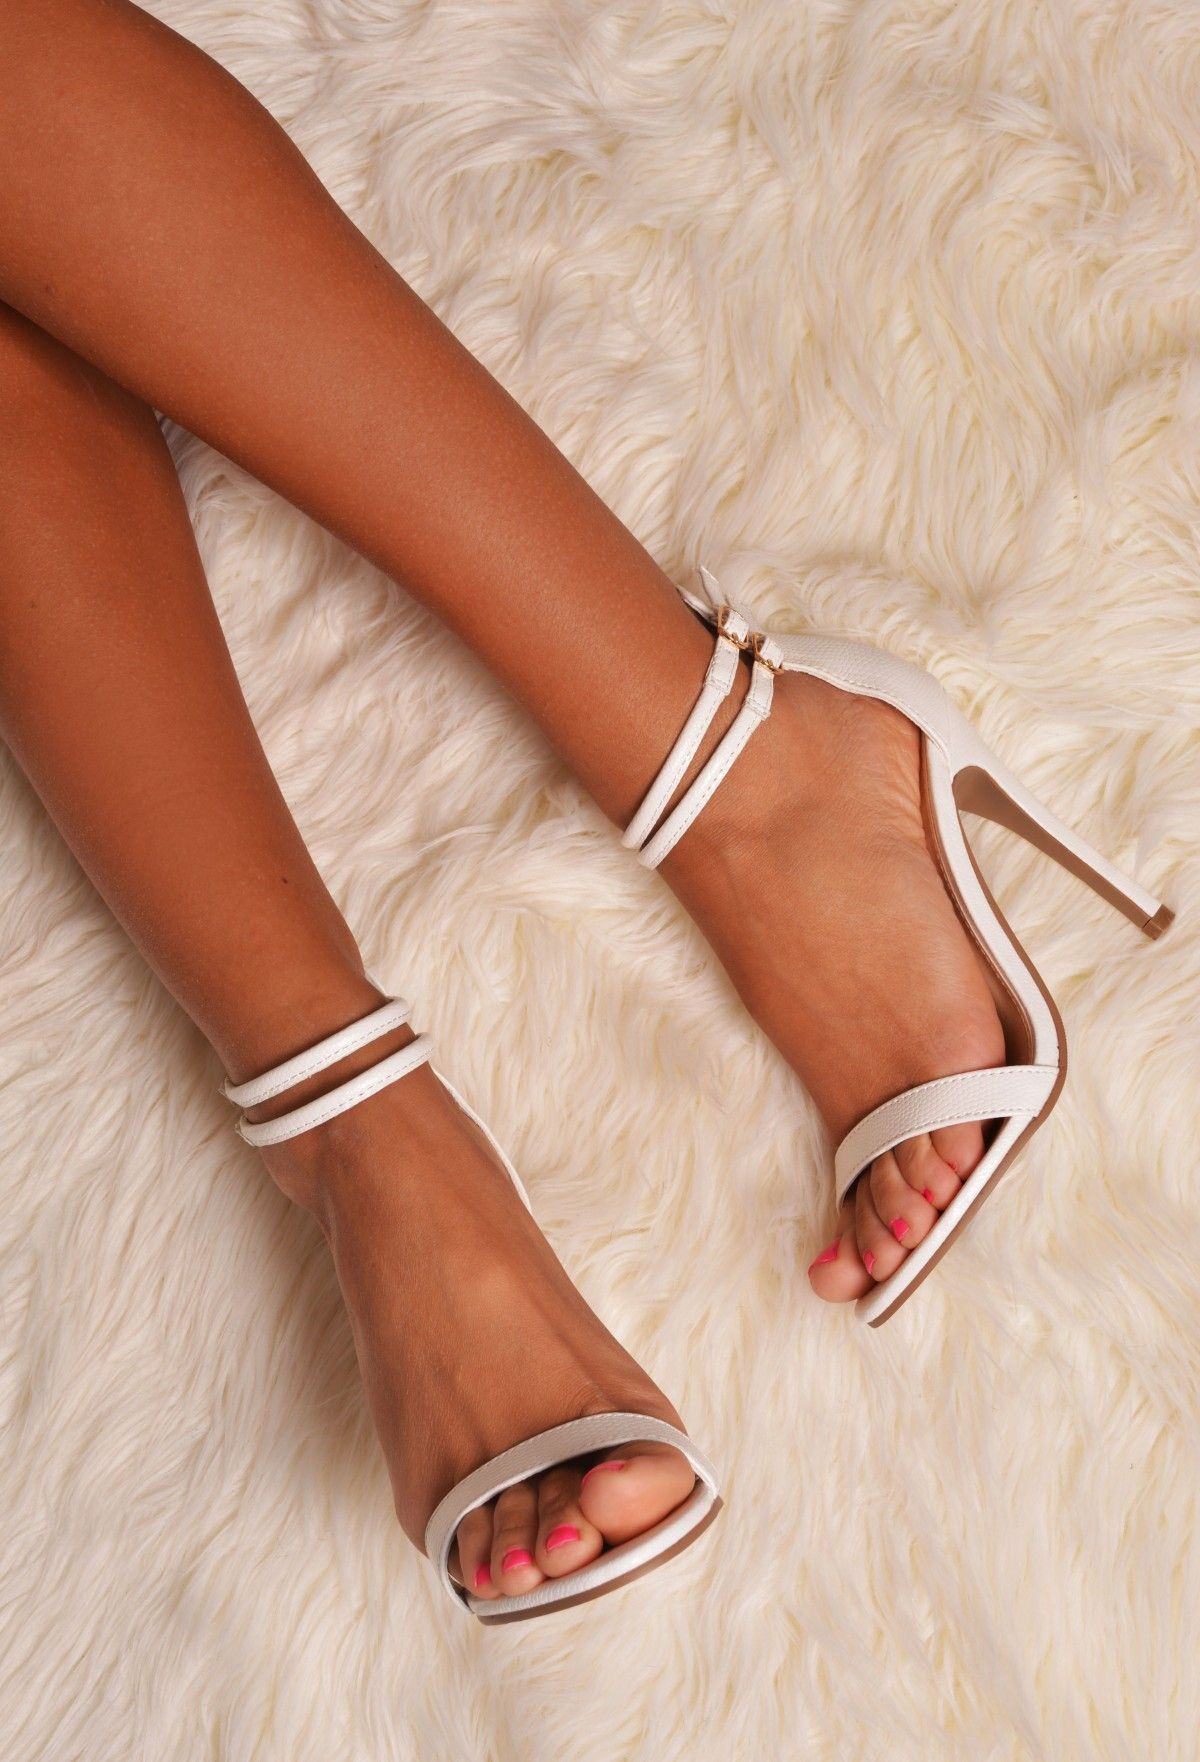 32 CUTE HOMECOMING SHOES TO LOOK PRETTY